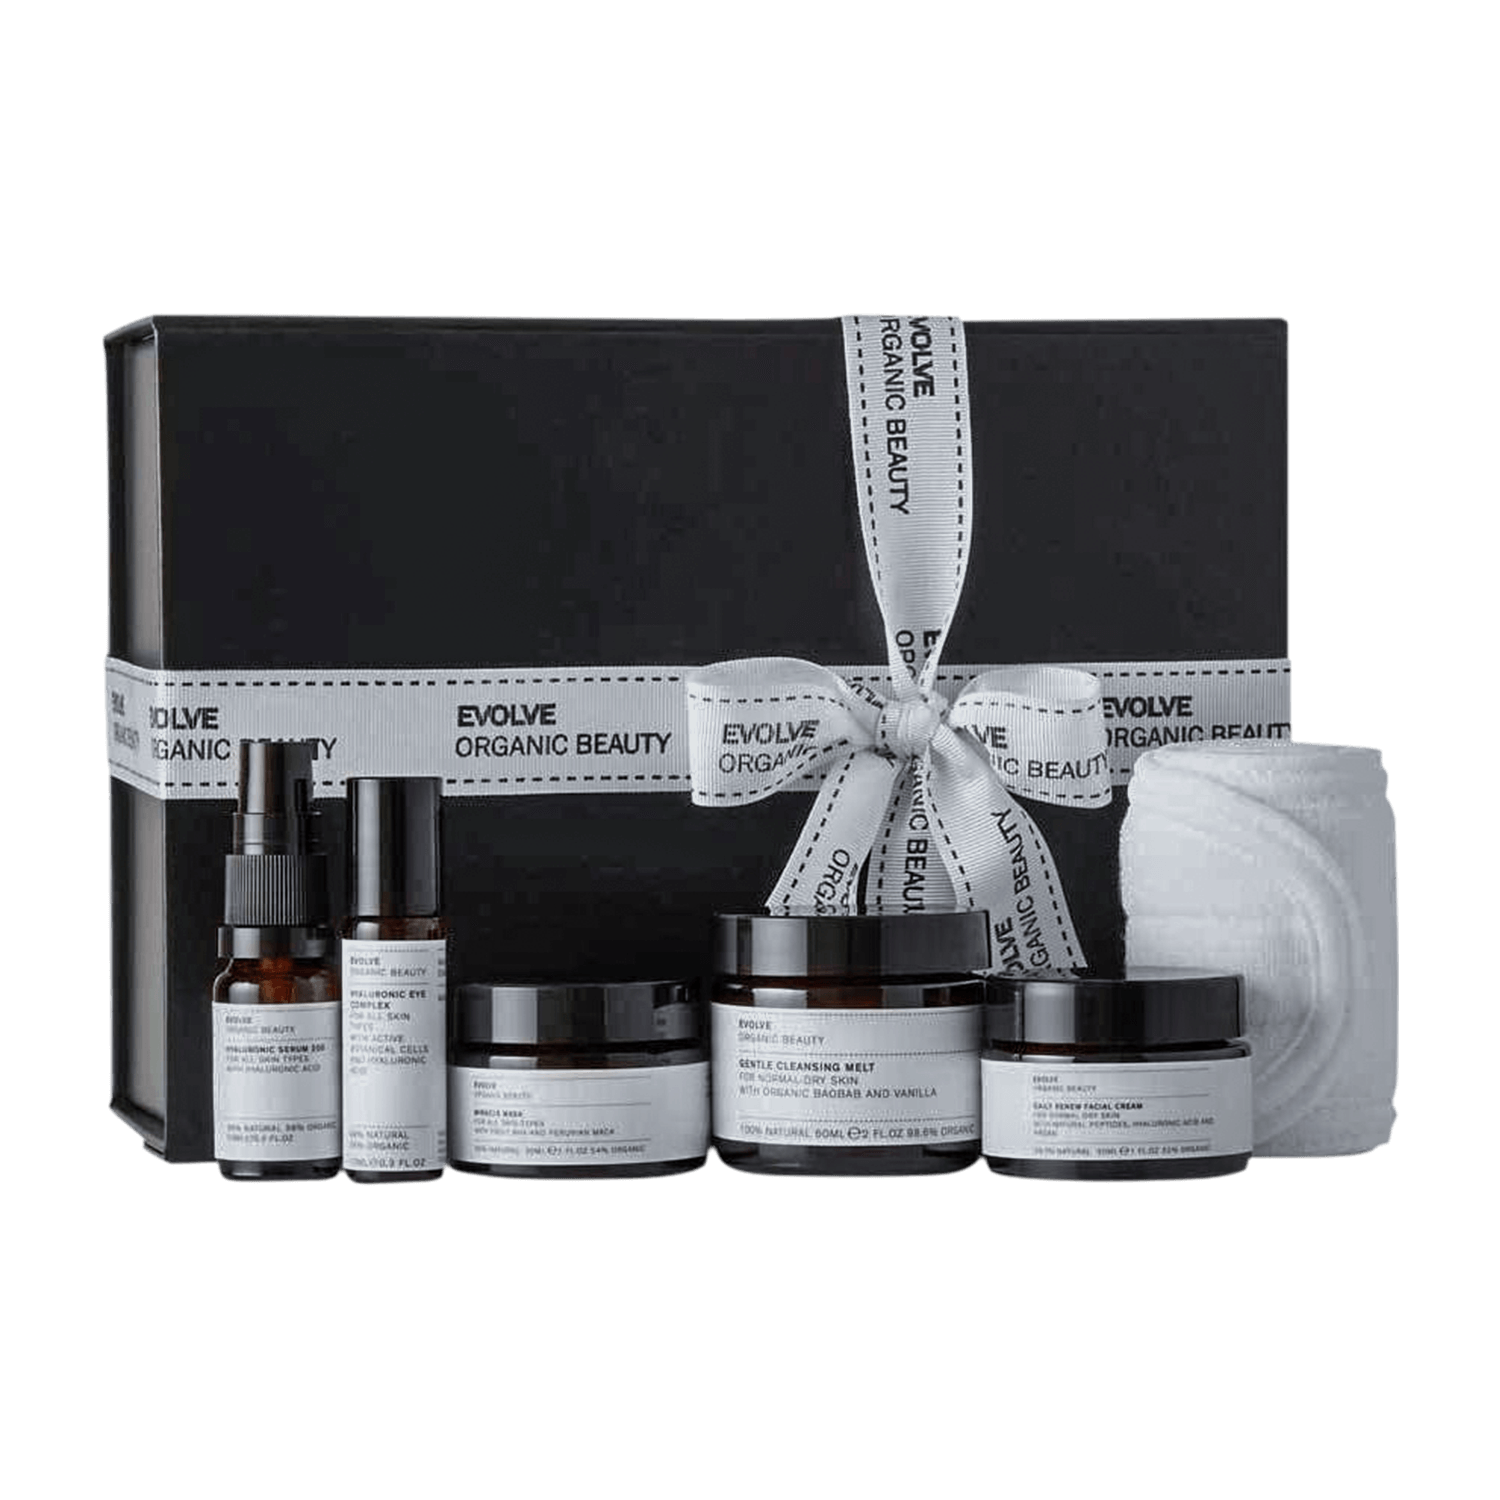 Evolve Beauty Get Up And Glow Facial In a Box Set